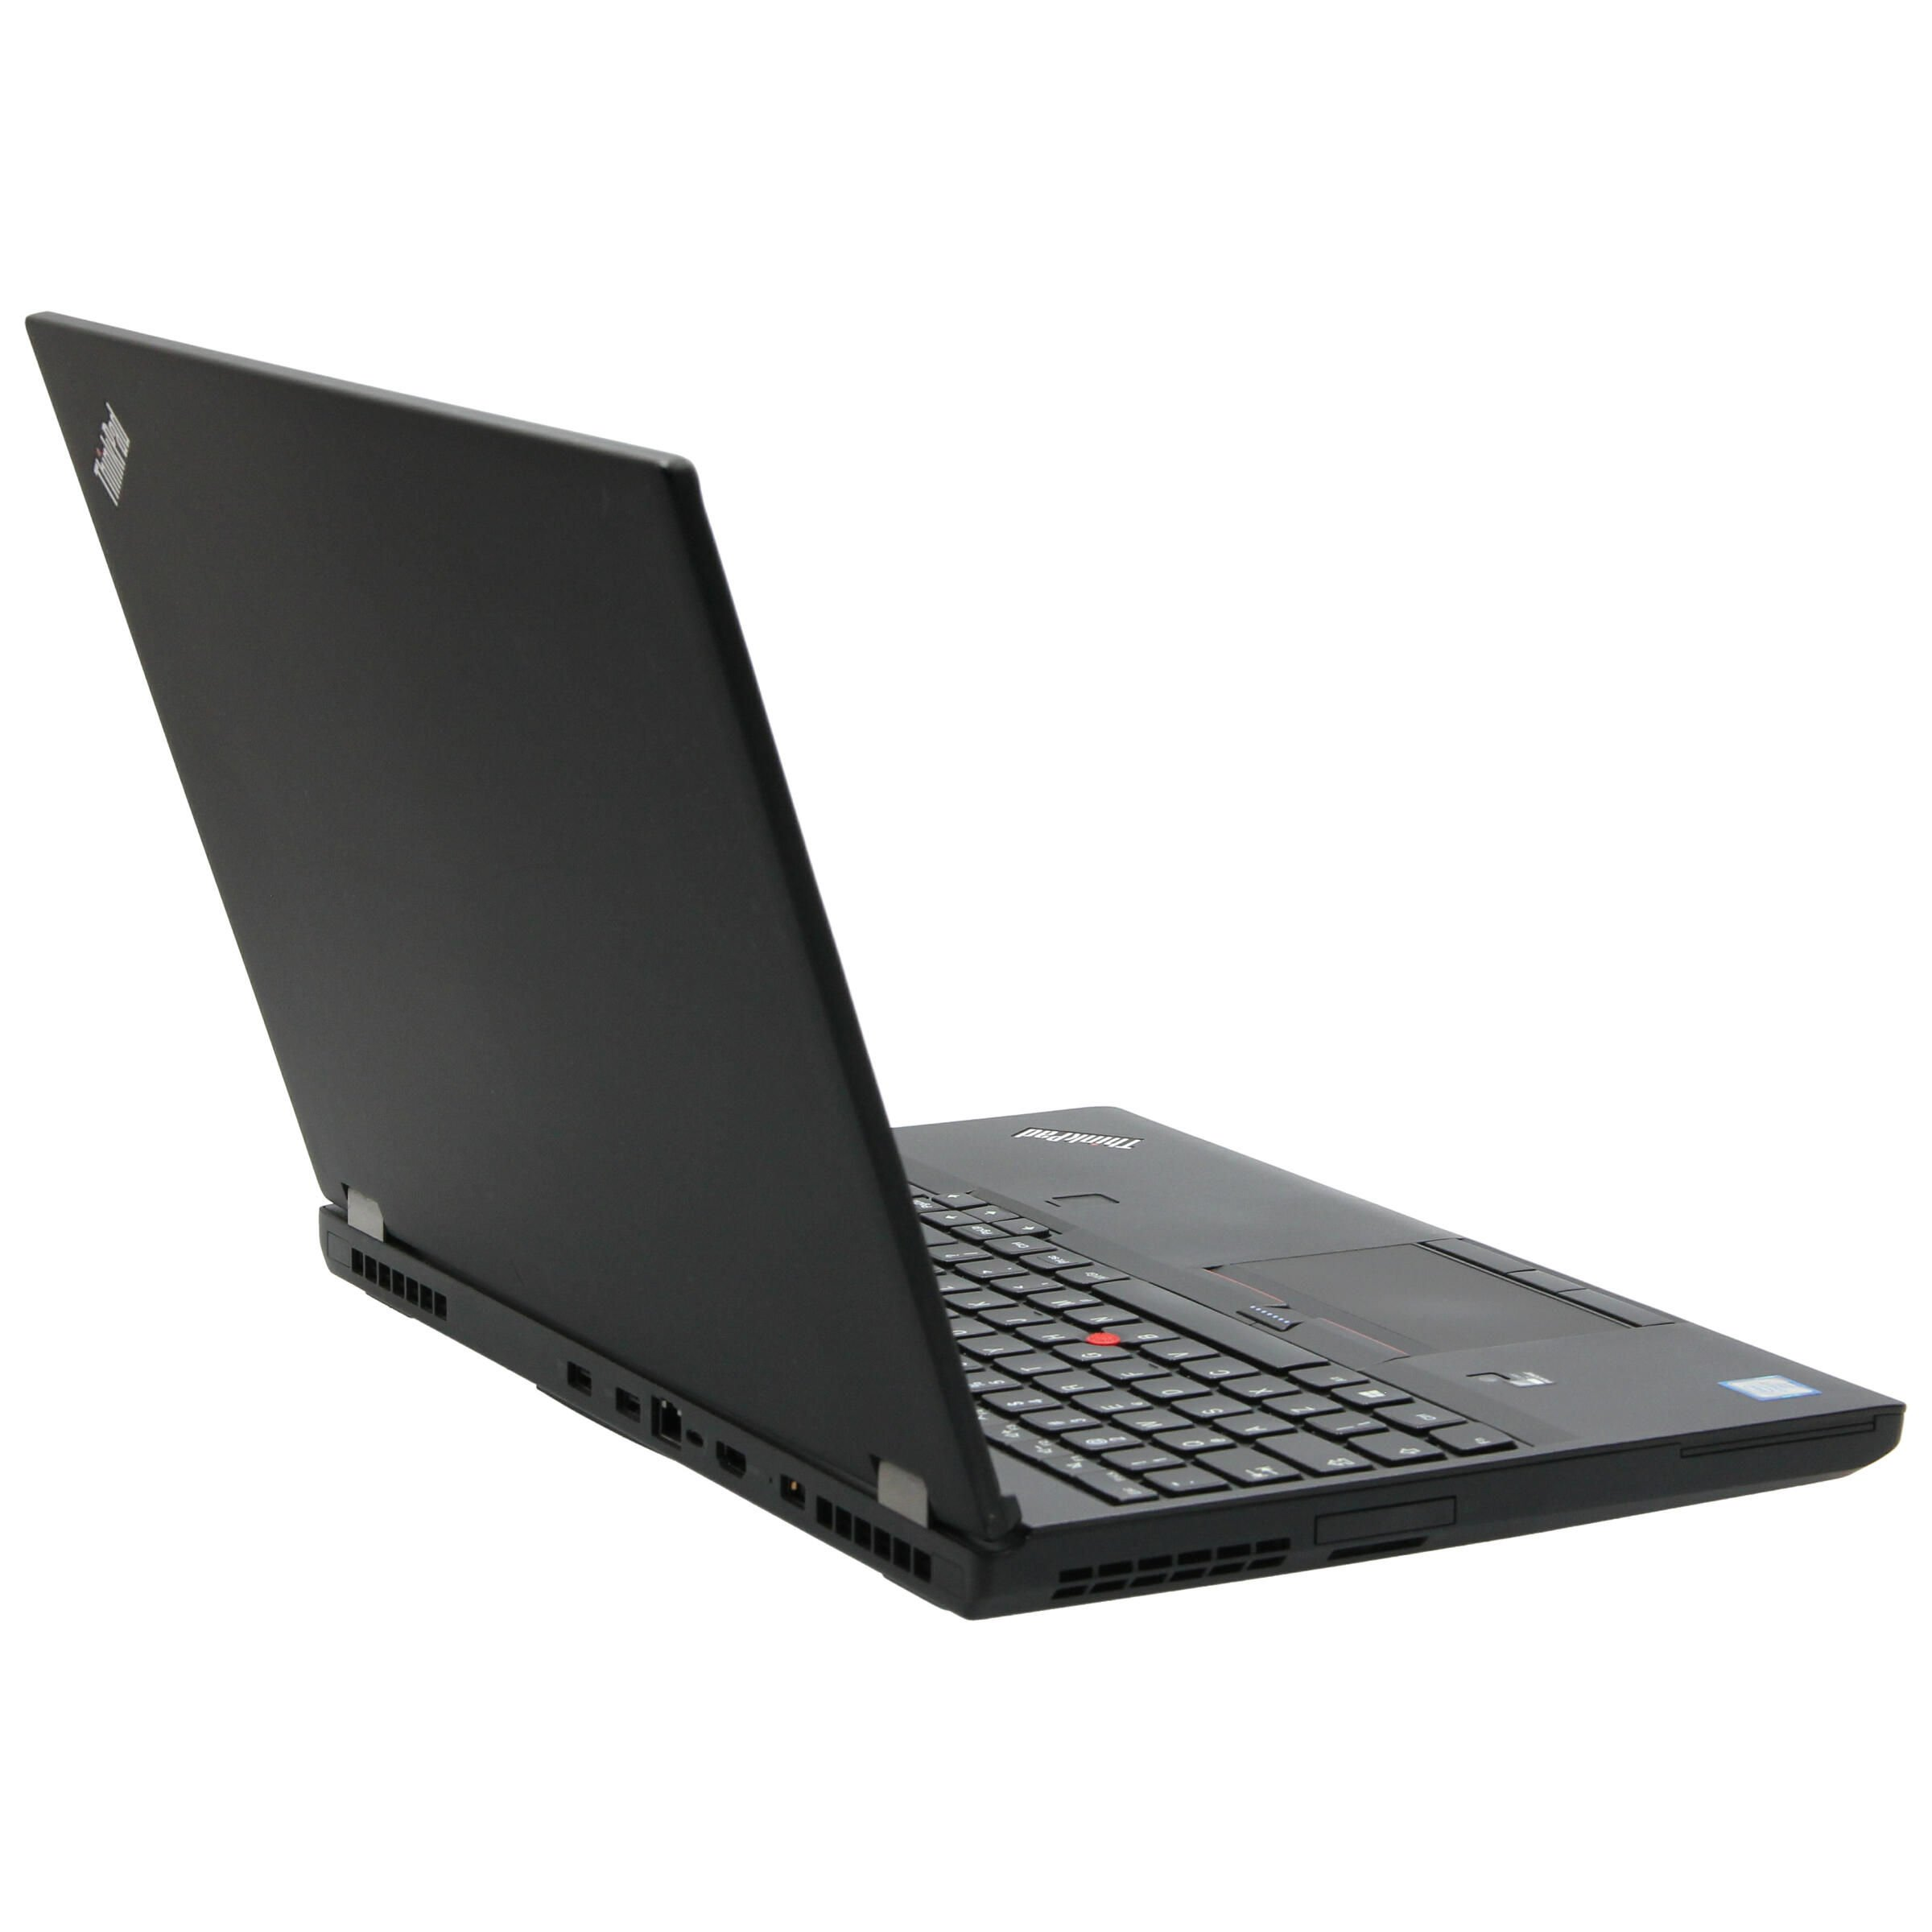 Laptop Lenovo do 4000 zł.